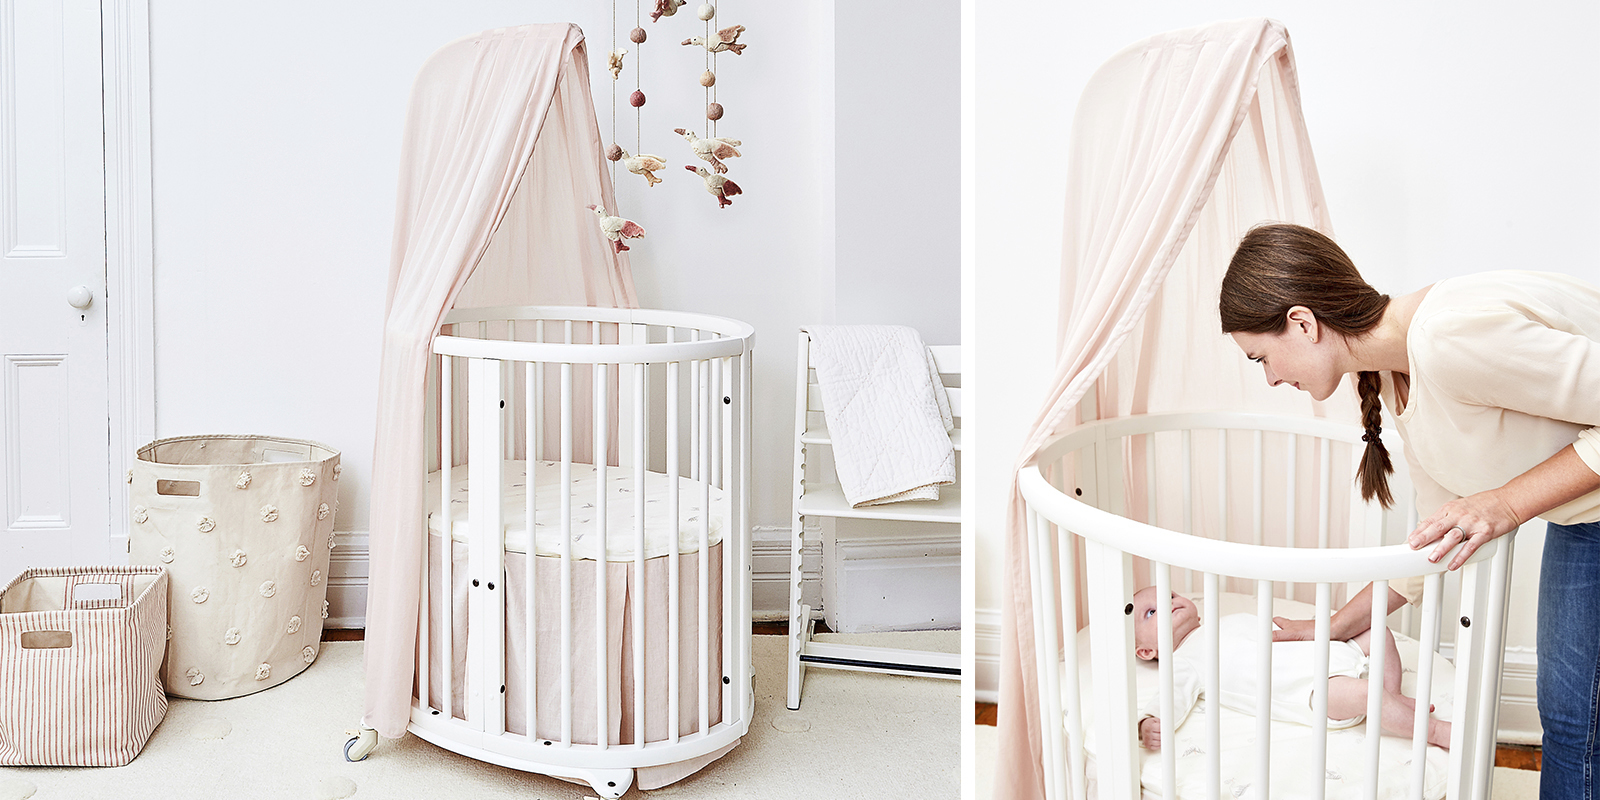 Sleepi Canopy Pehr Petite in setting